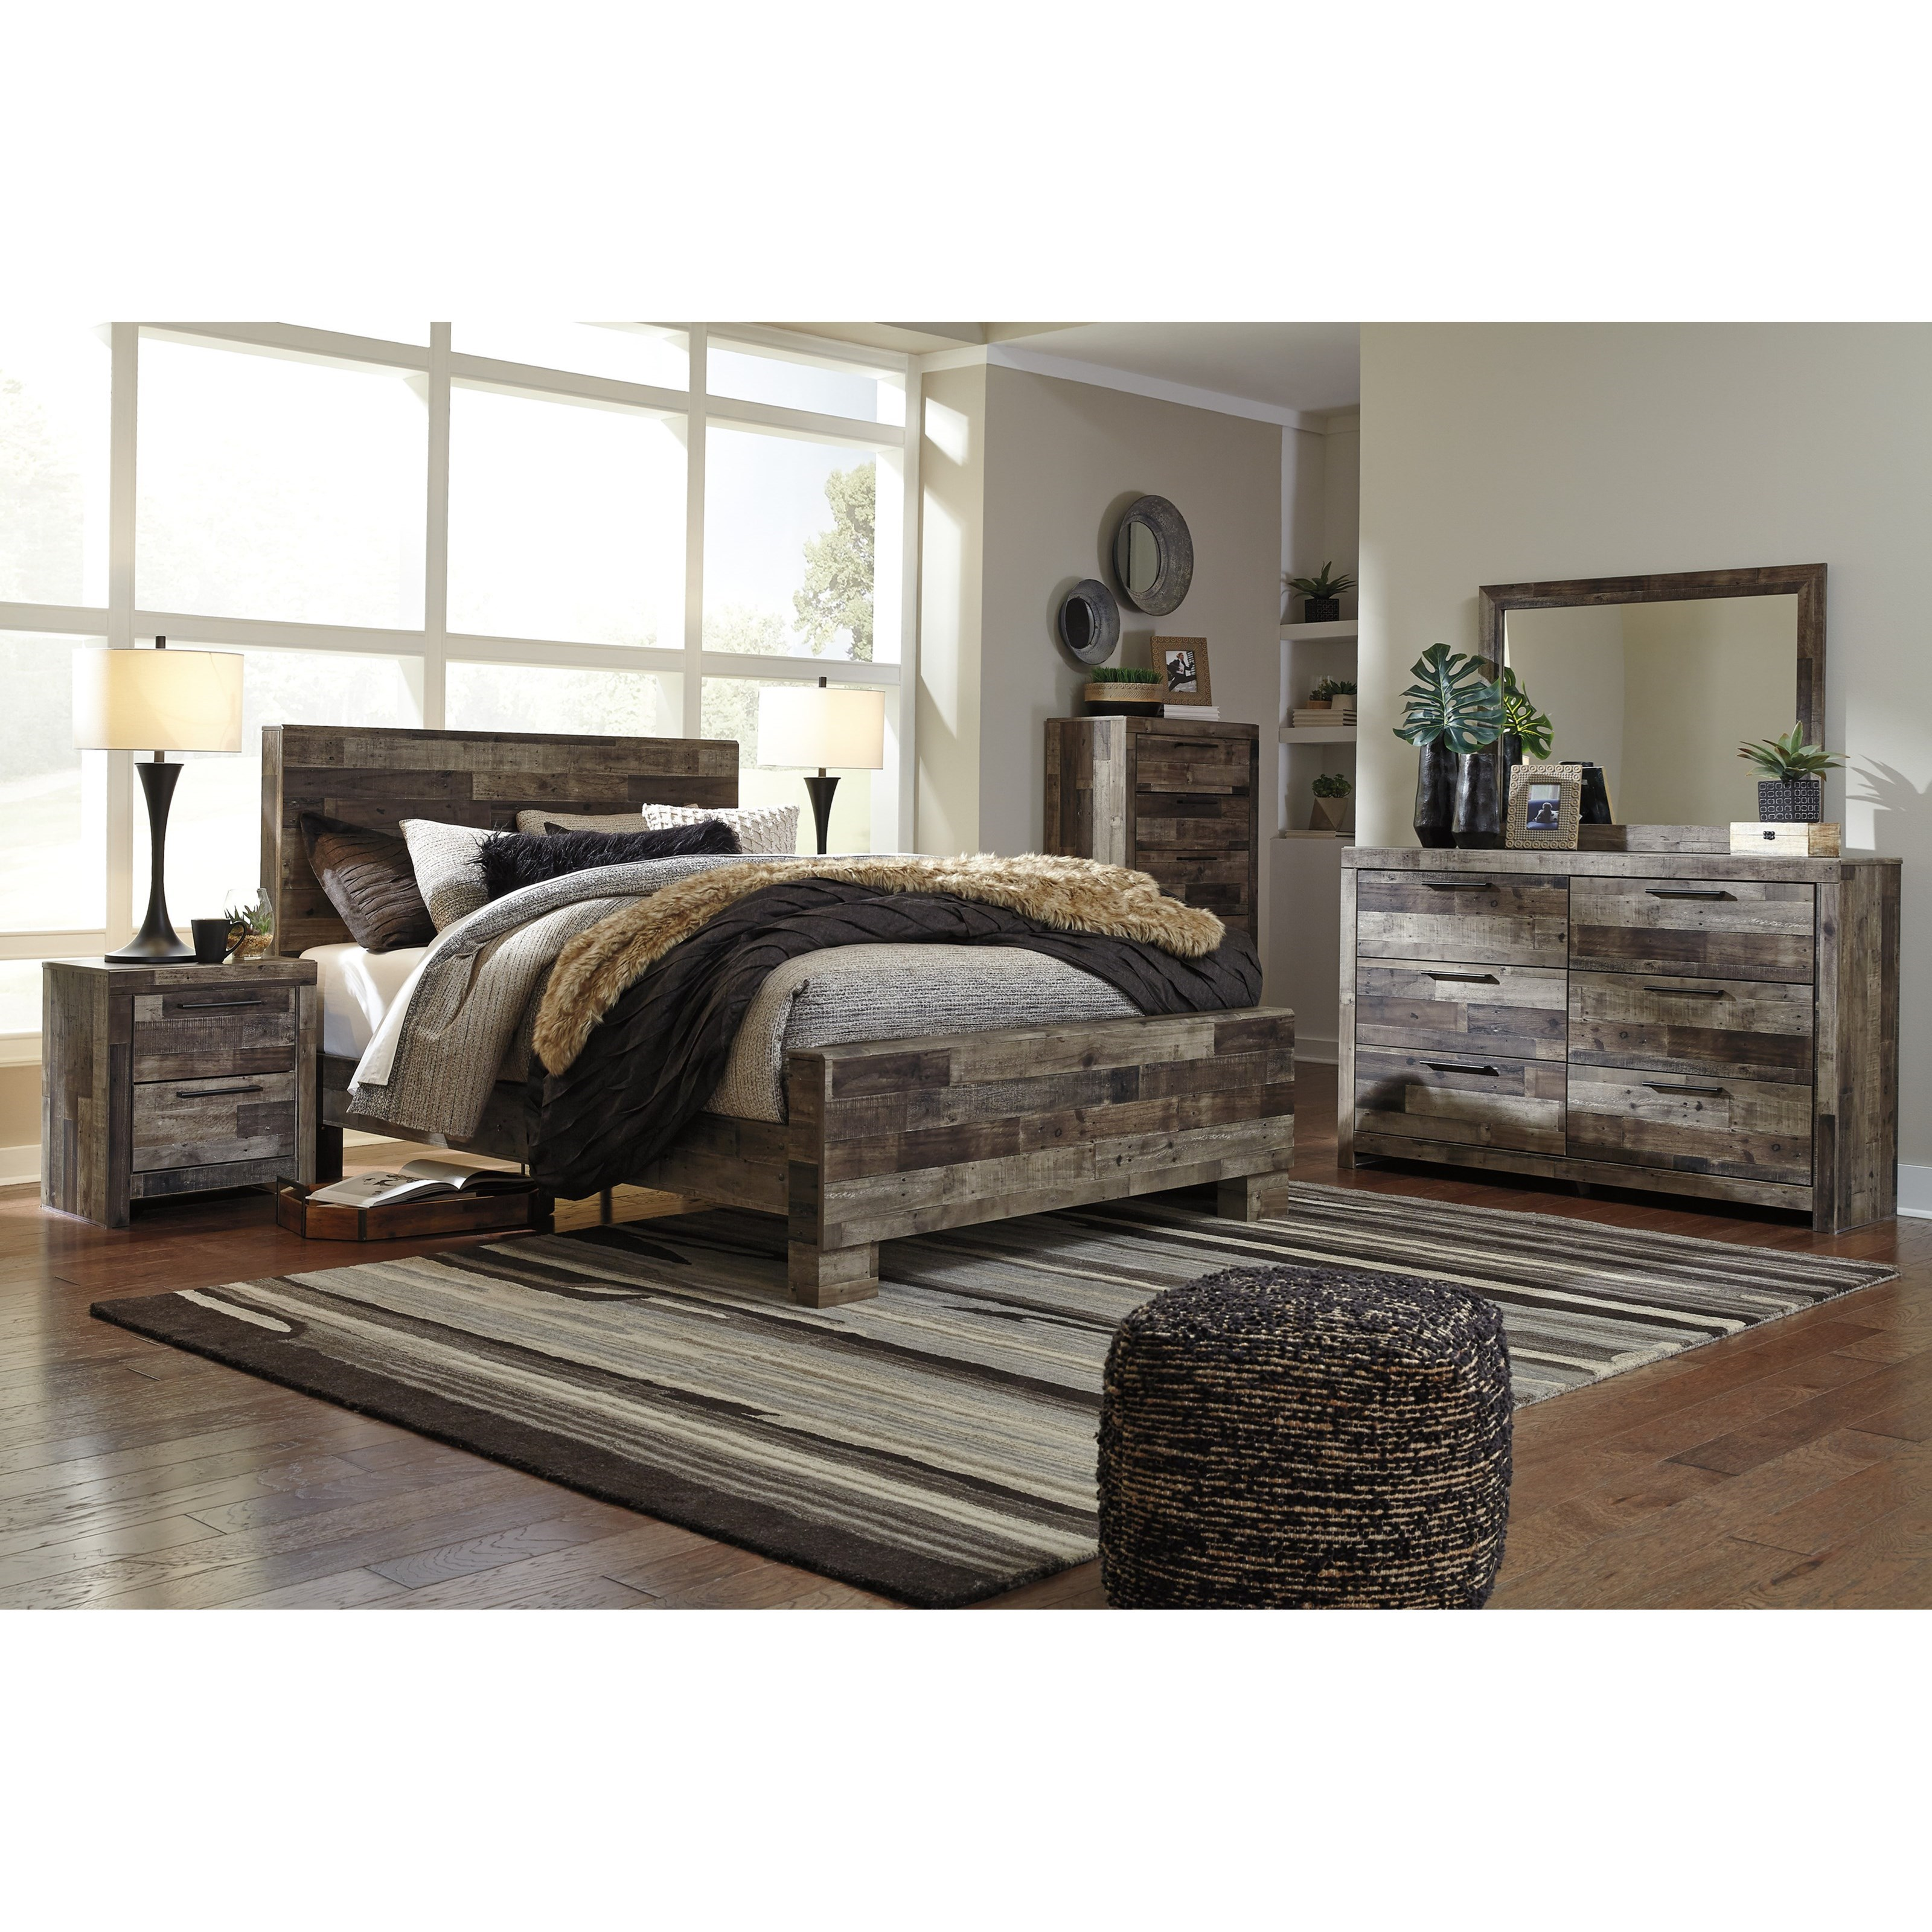 Derekson Queen Bedroom Group by Benchcraft at Darvin Furniture